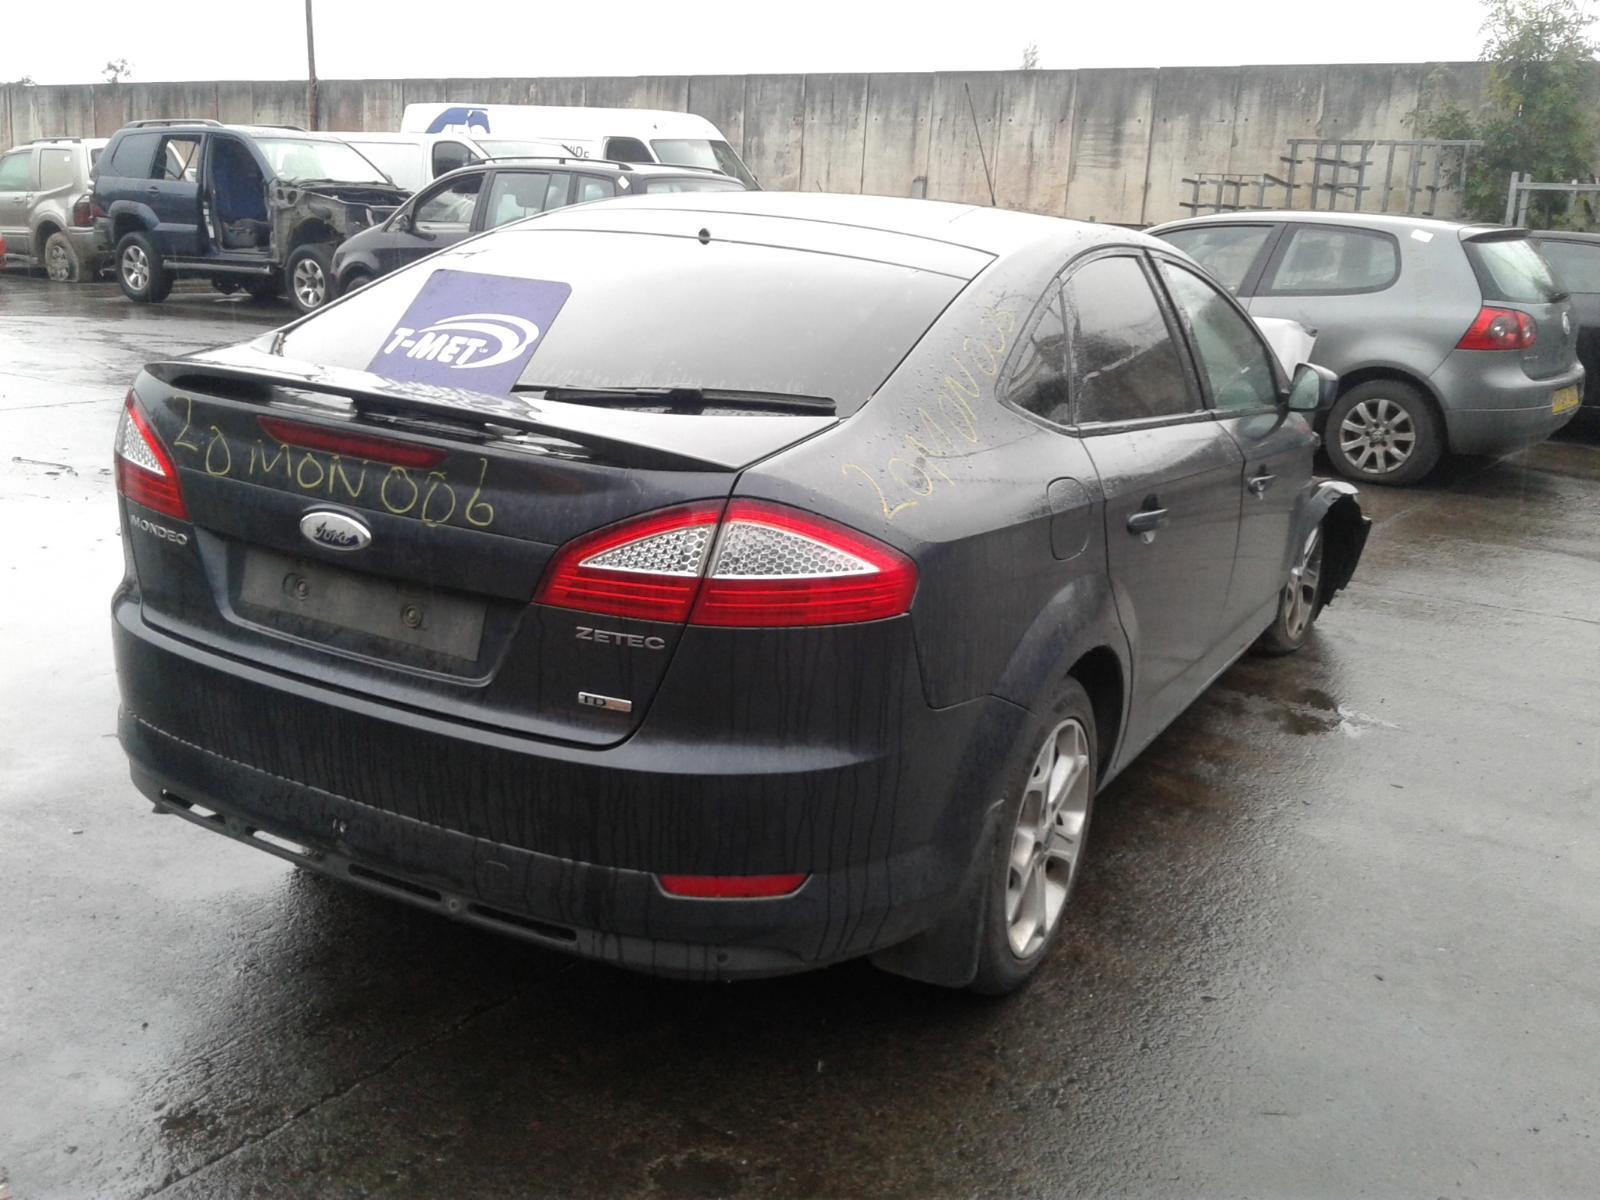 2010 FORD MONDEO Image